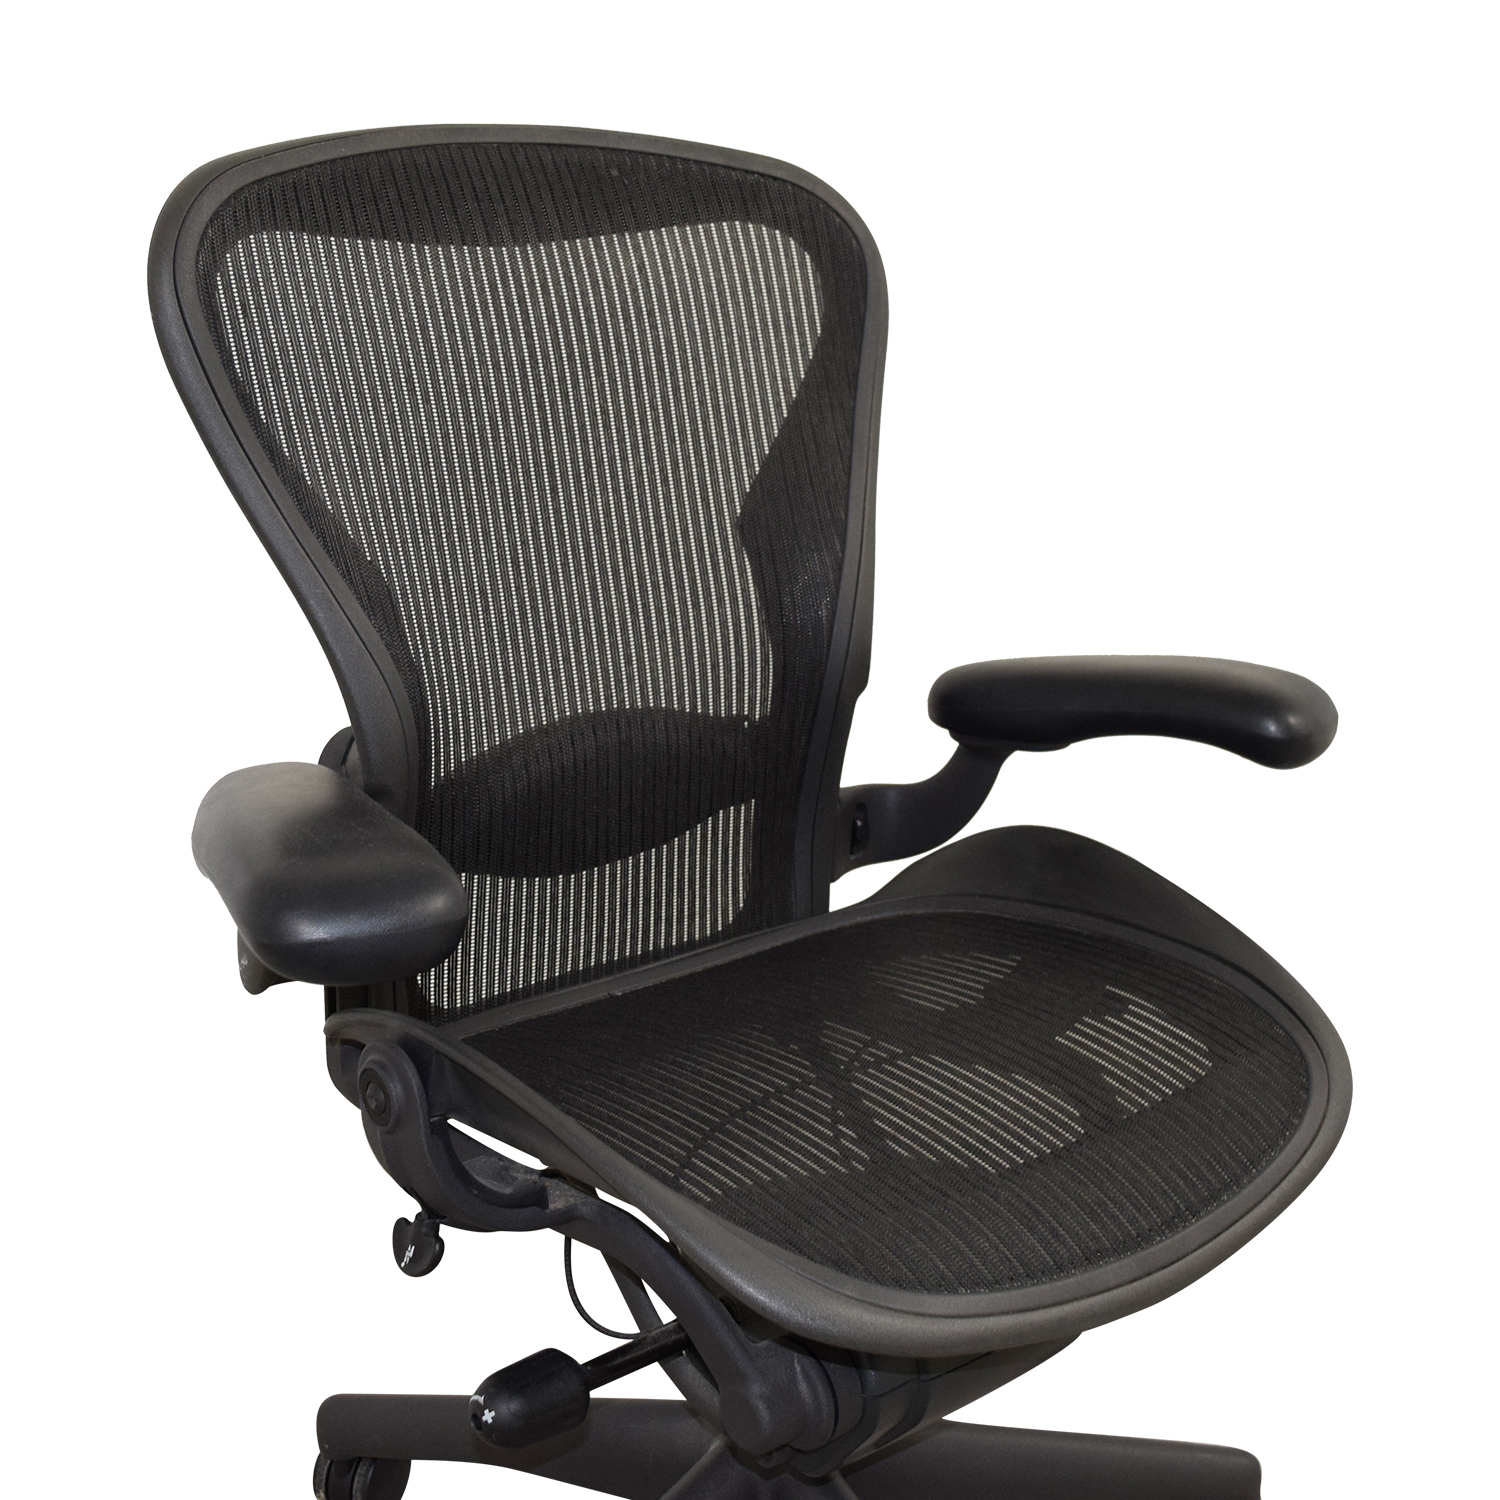 Herman Miller Herman Miller Aeron Black Chair BLACK